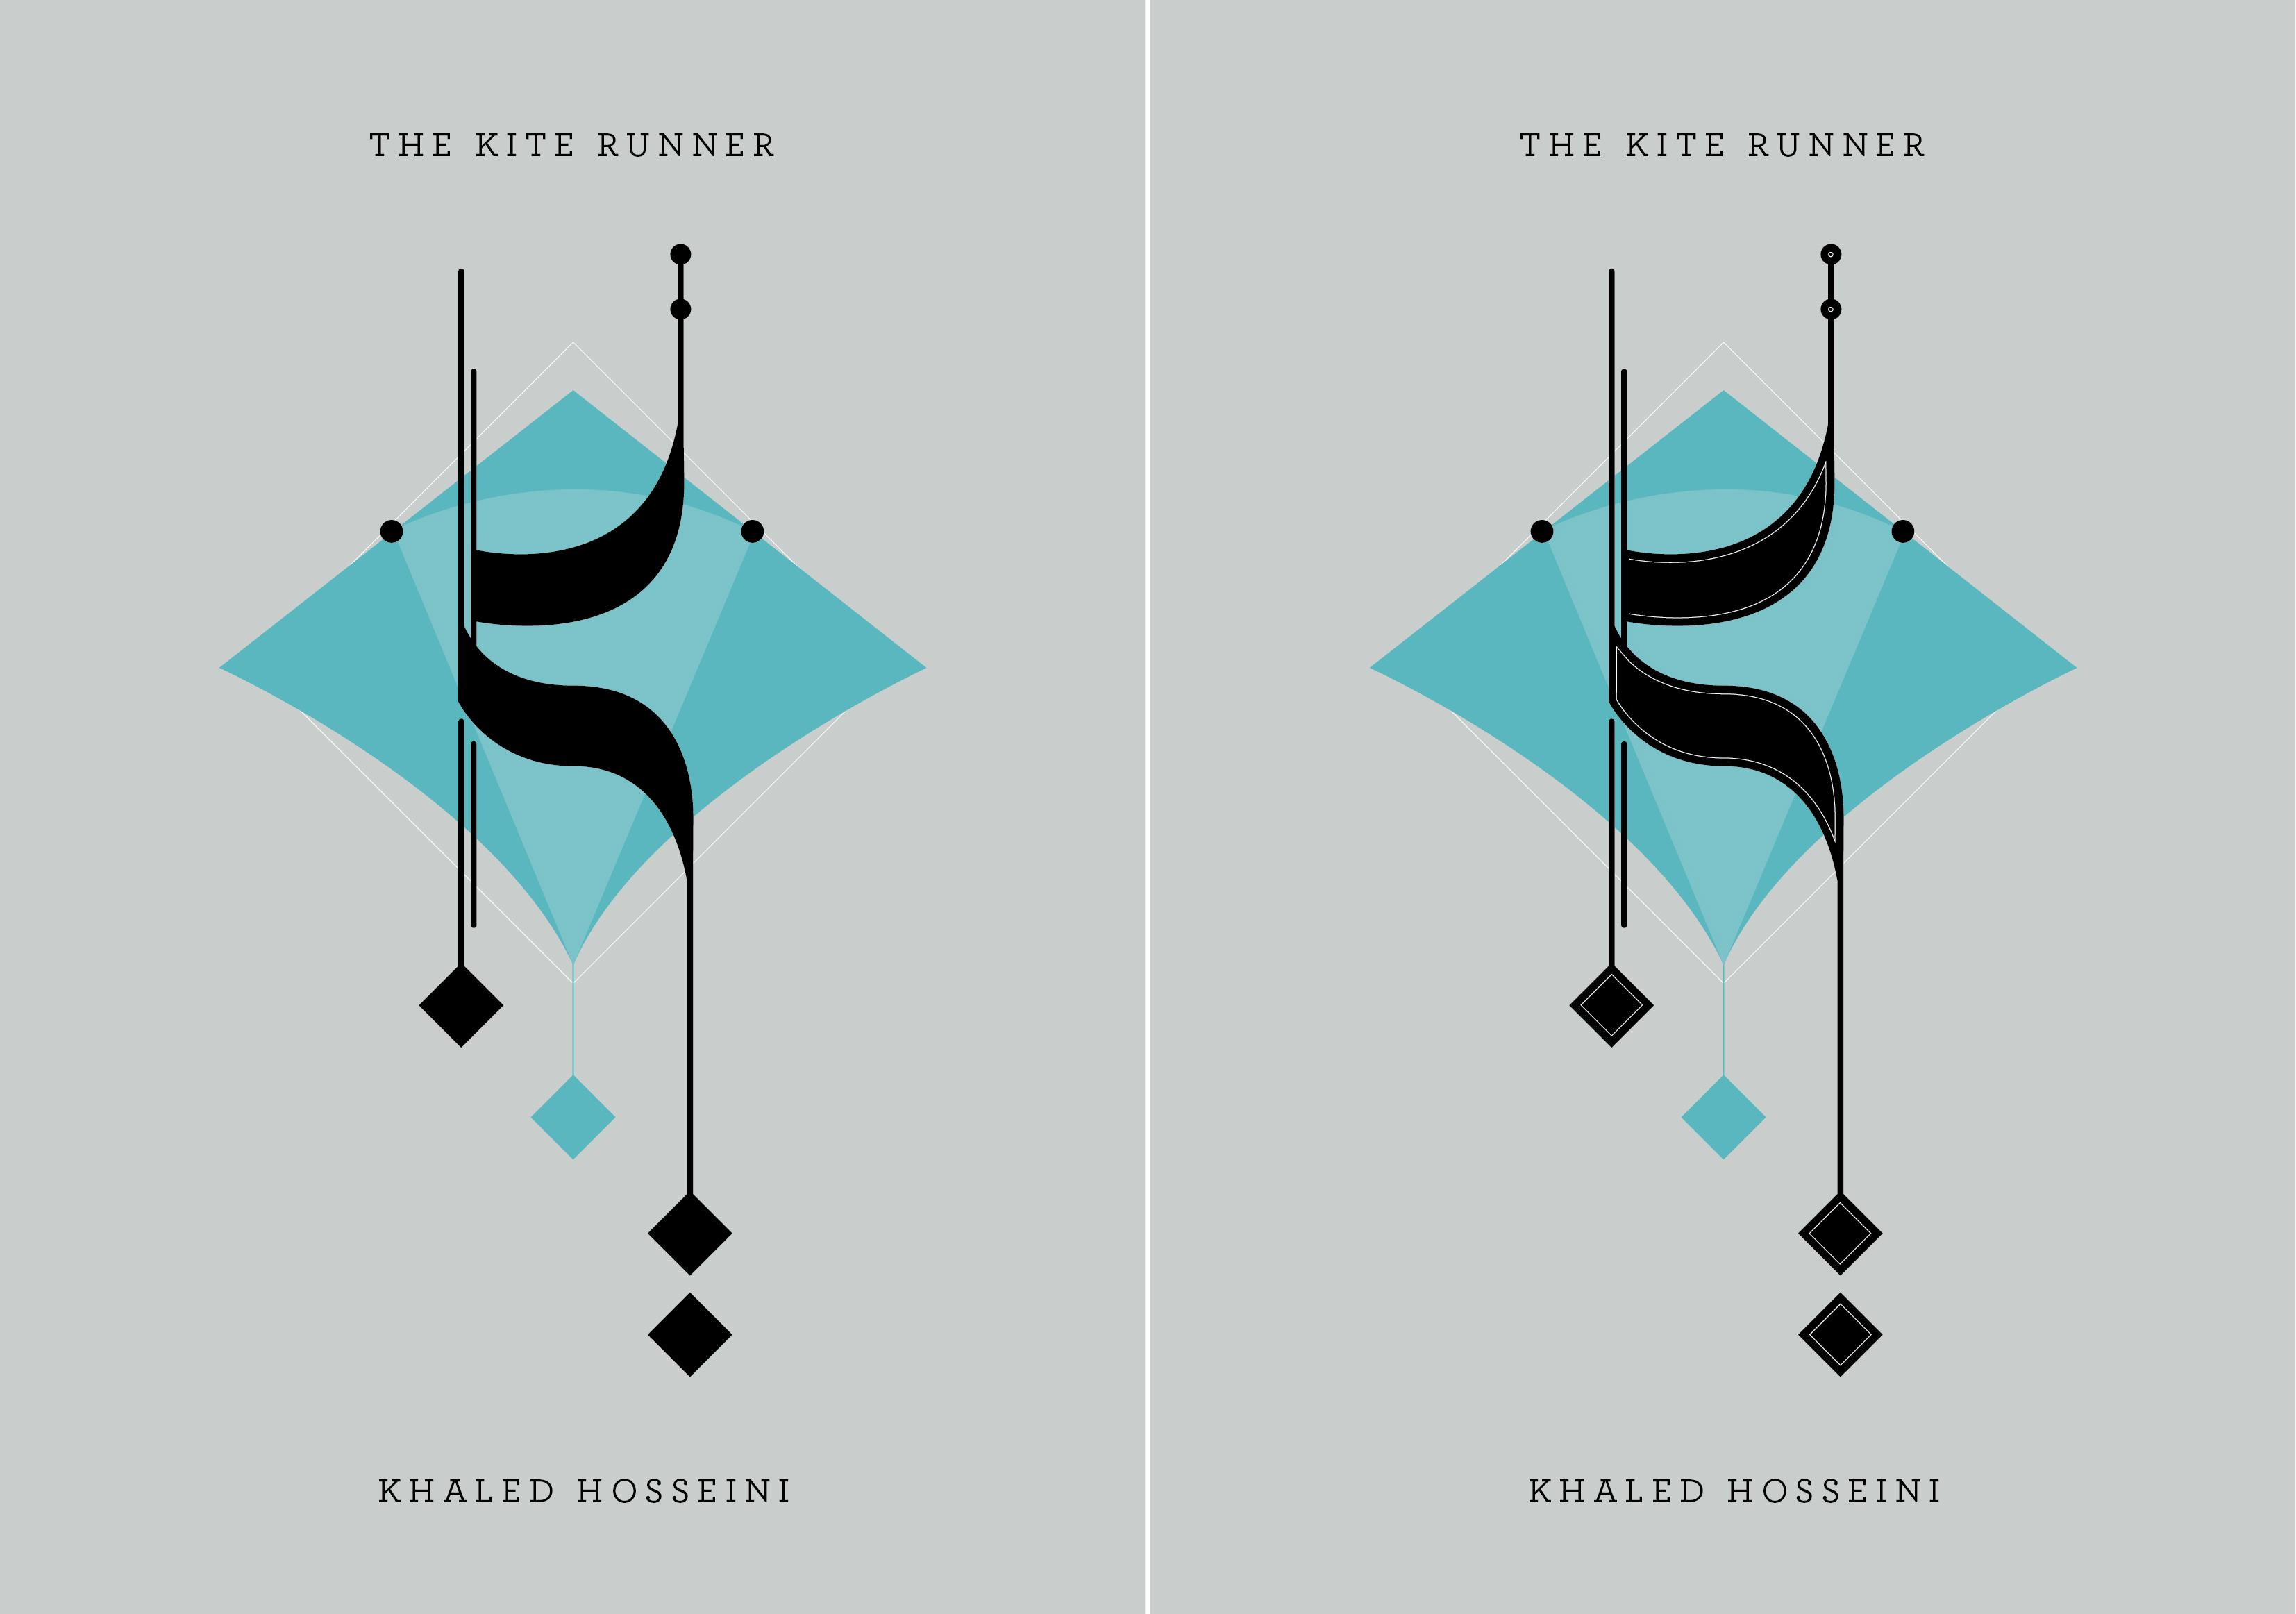 the kite runner by khaled hosseni projects i like the idea keeping a muted background highlights of brighter colour any feedback on which option looks best would be great